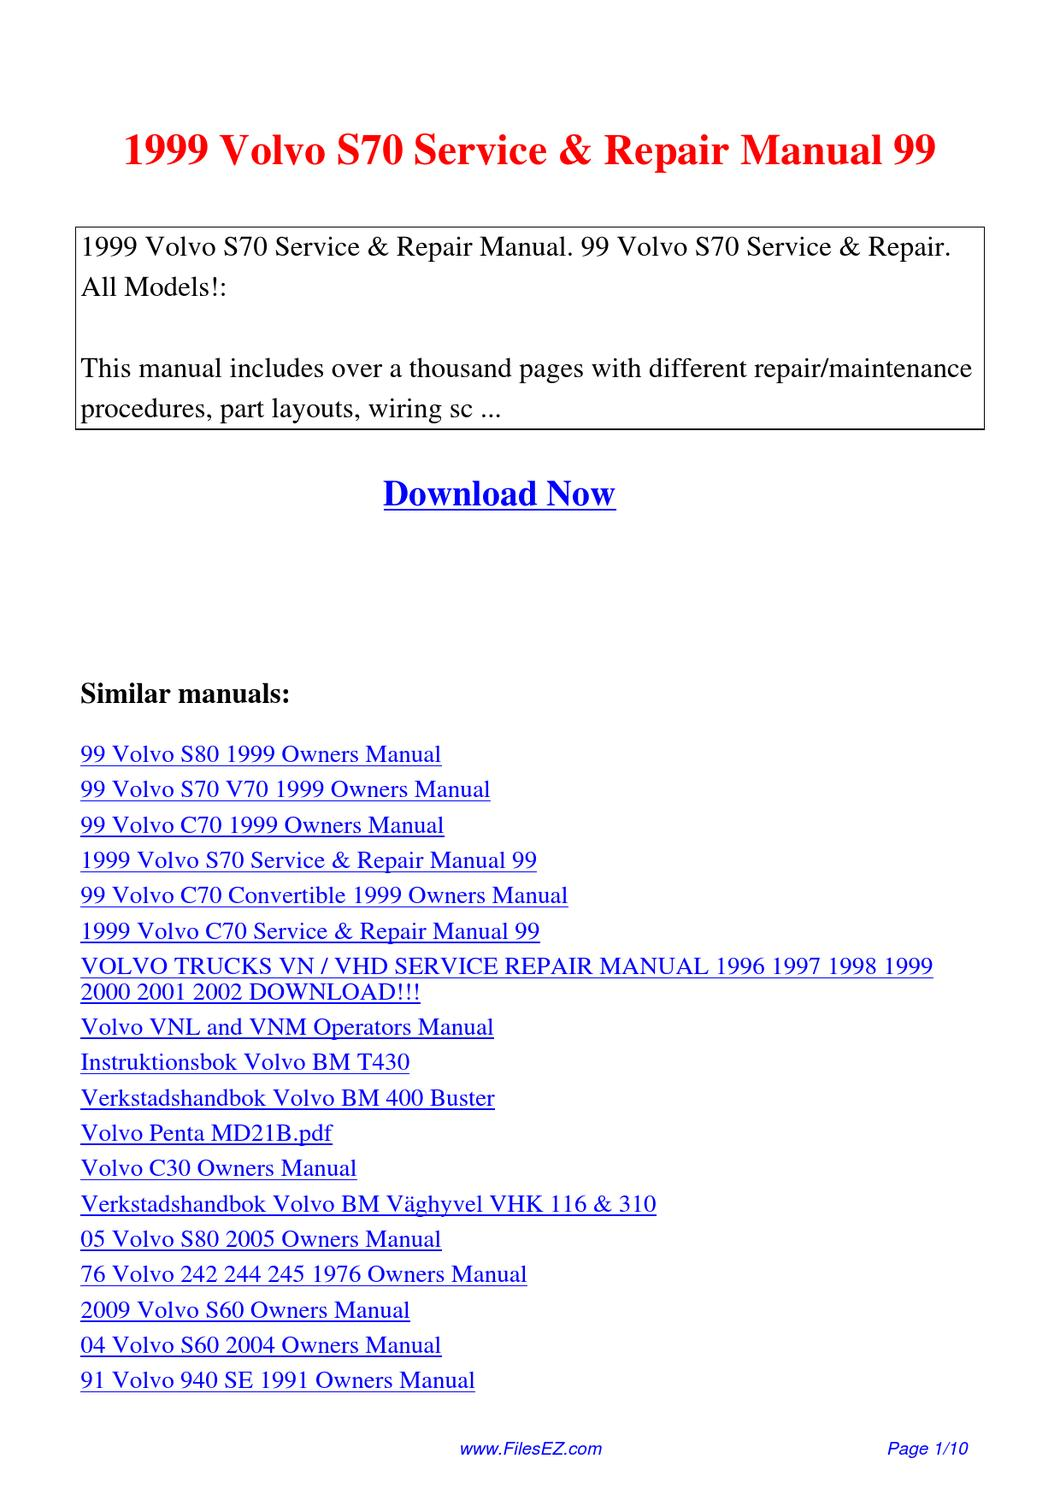 1999 Volvo S70 Service Repair Manual 99 By David Nan